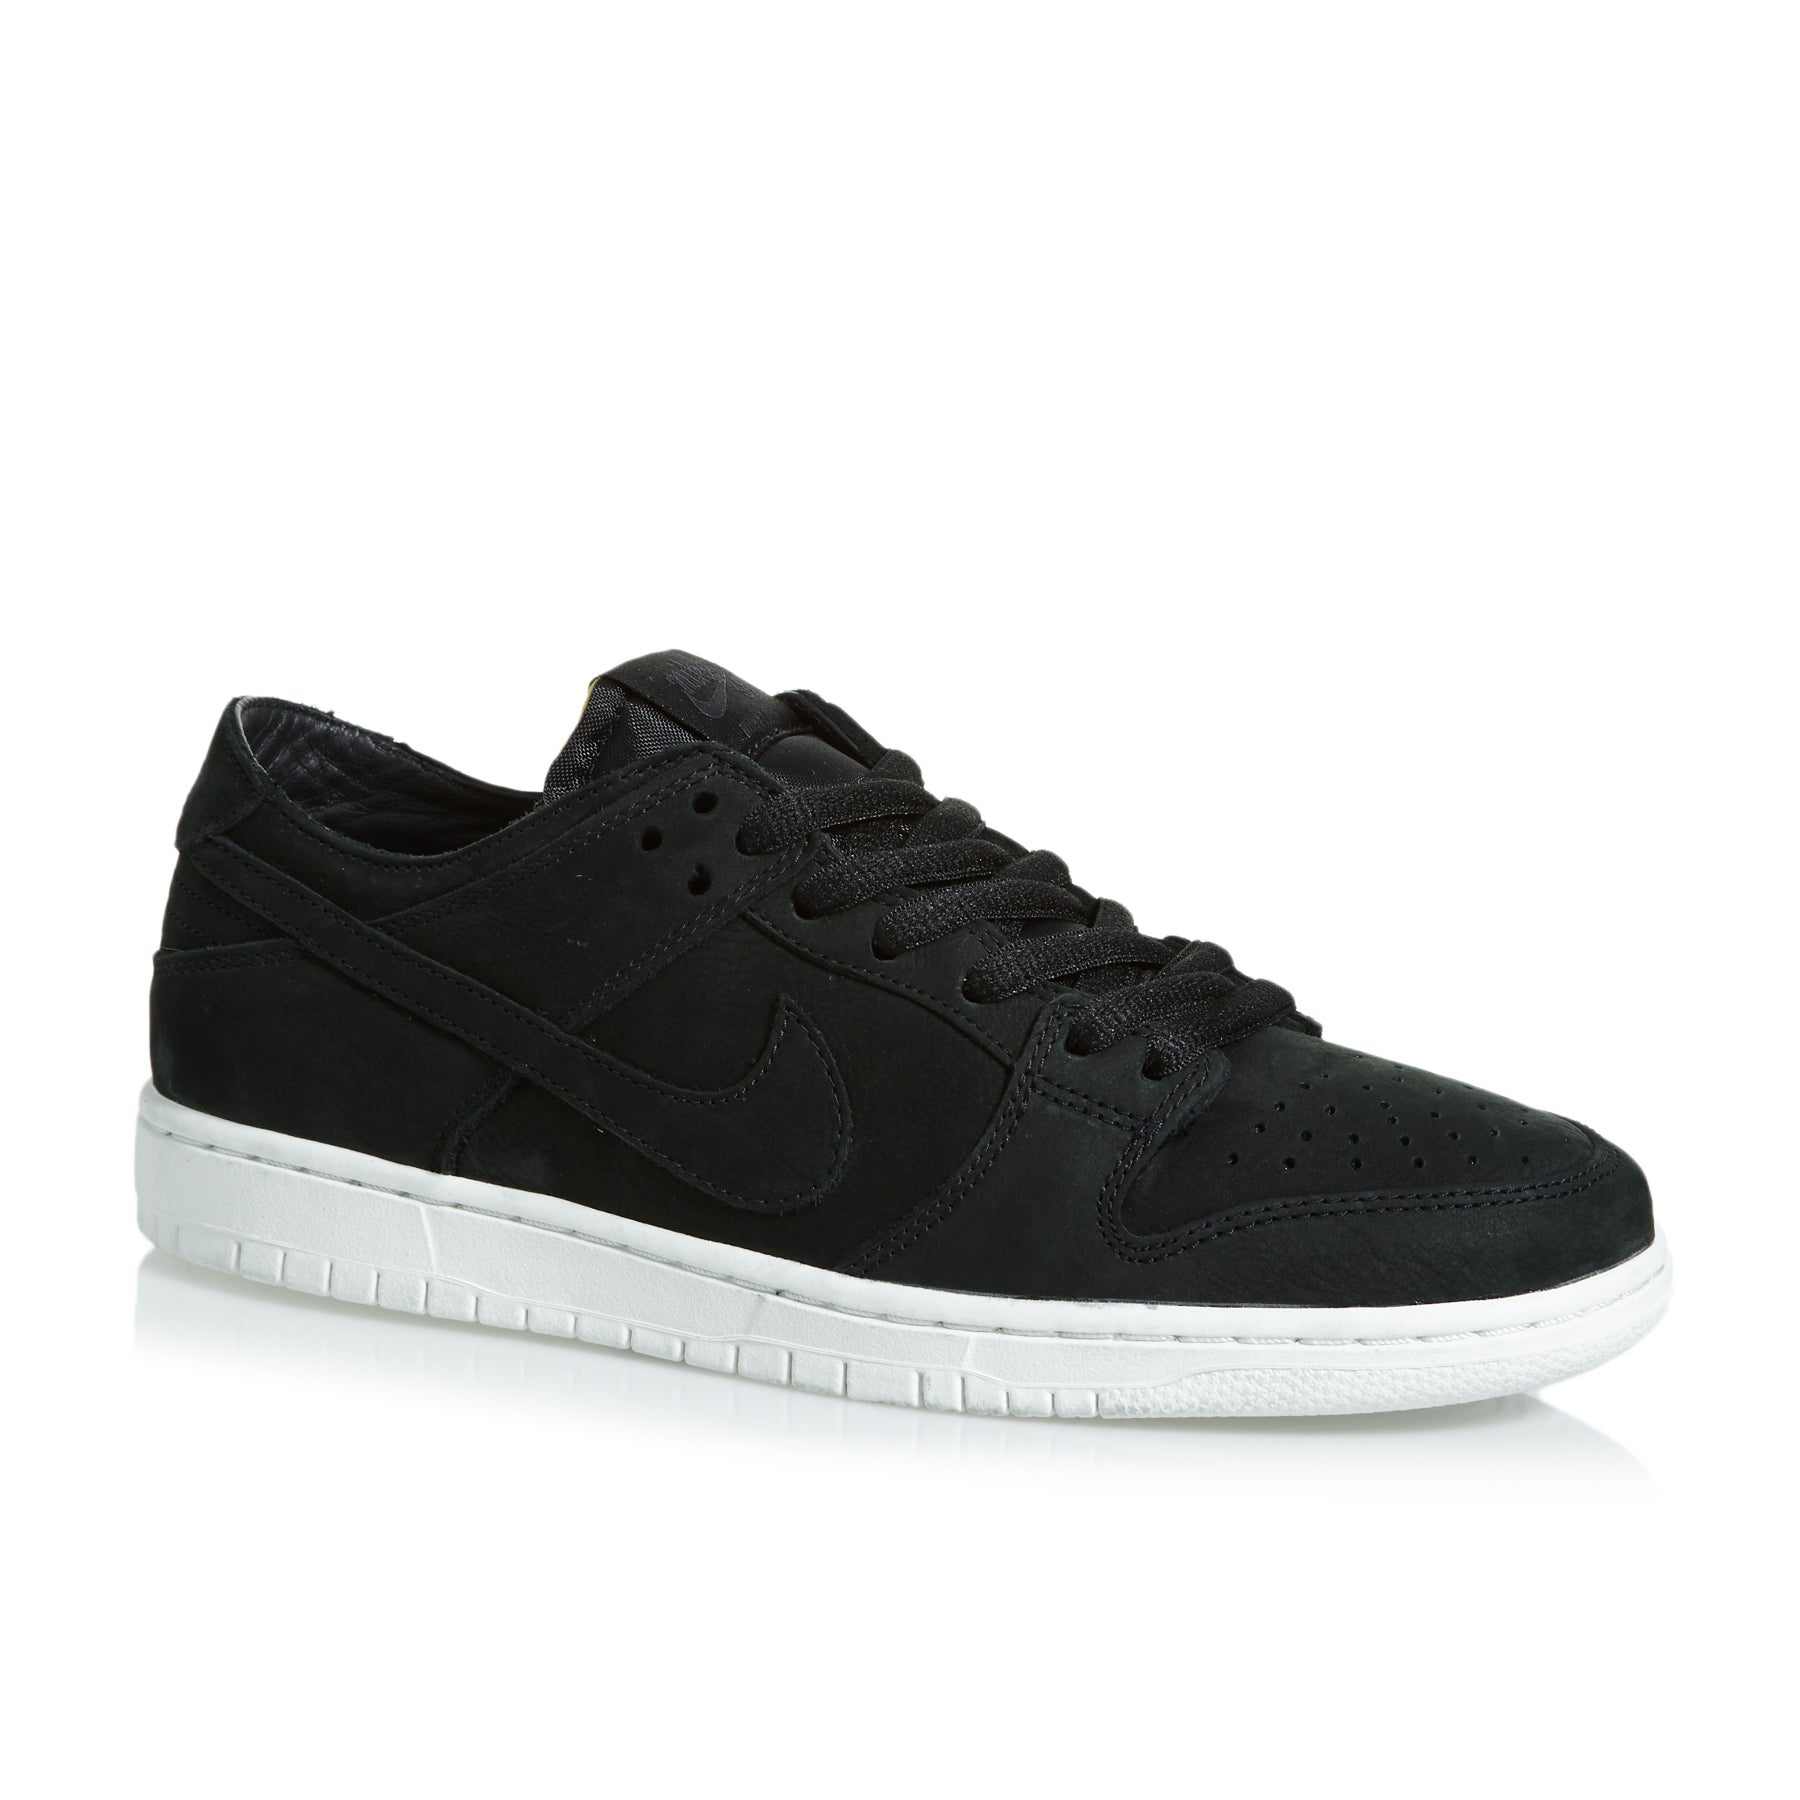 e2534f12eb02 Nike SB Zoom Dunk Low Pro Shoes available from Surfdome